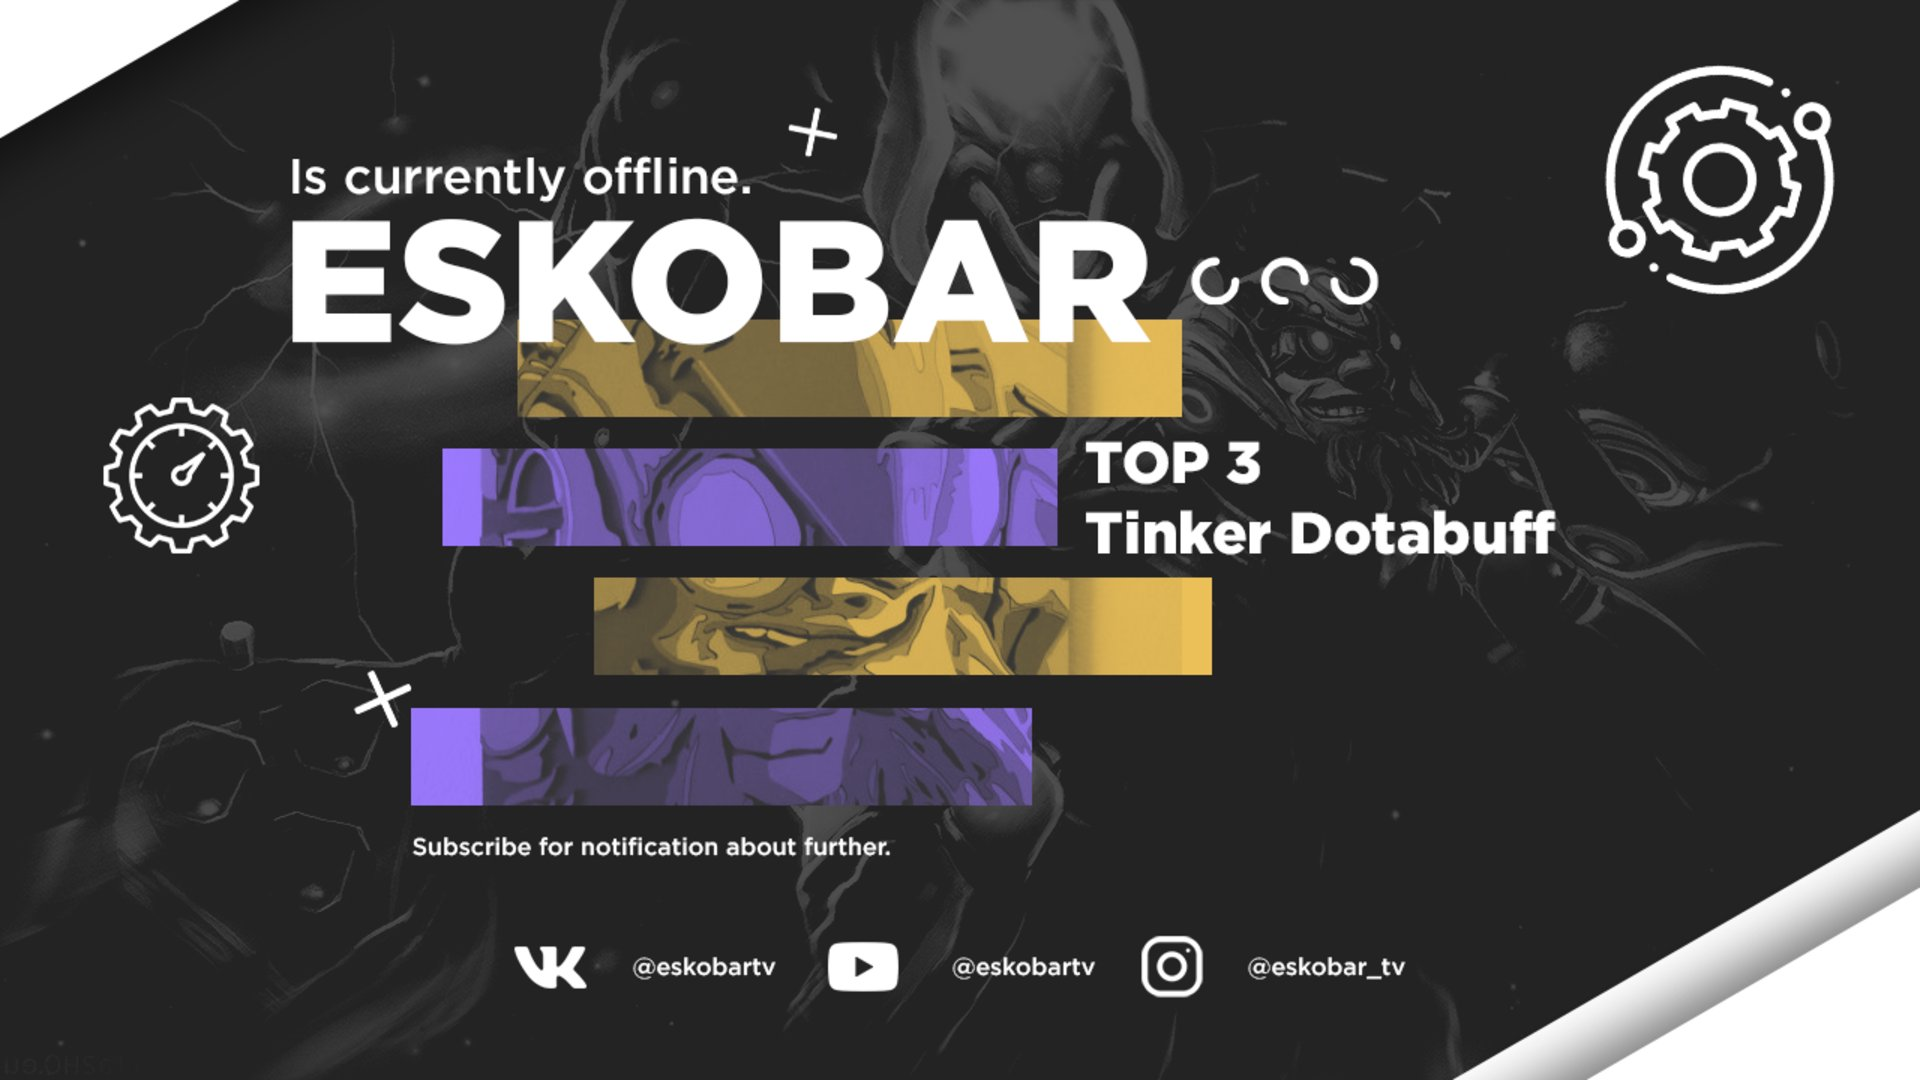 Twitch stream of EskobarTv